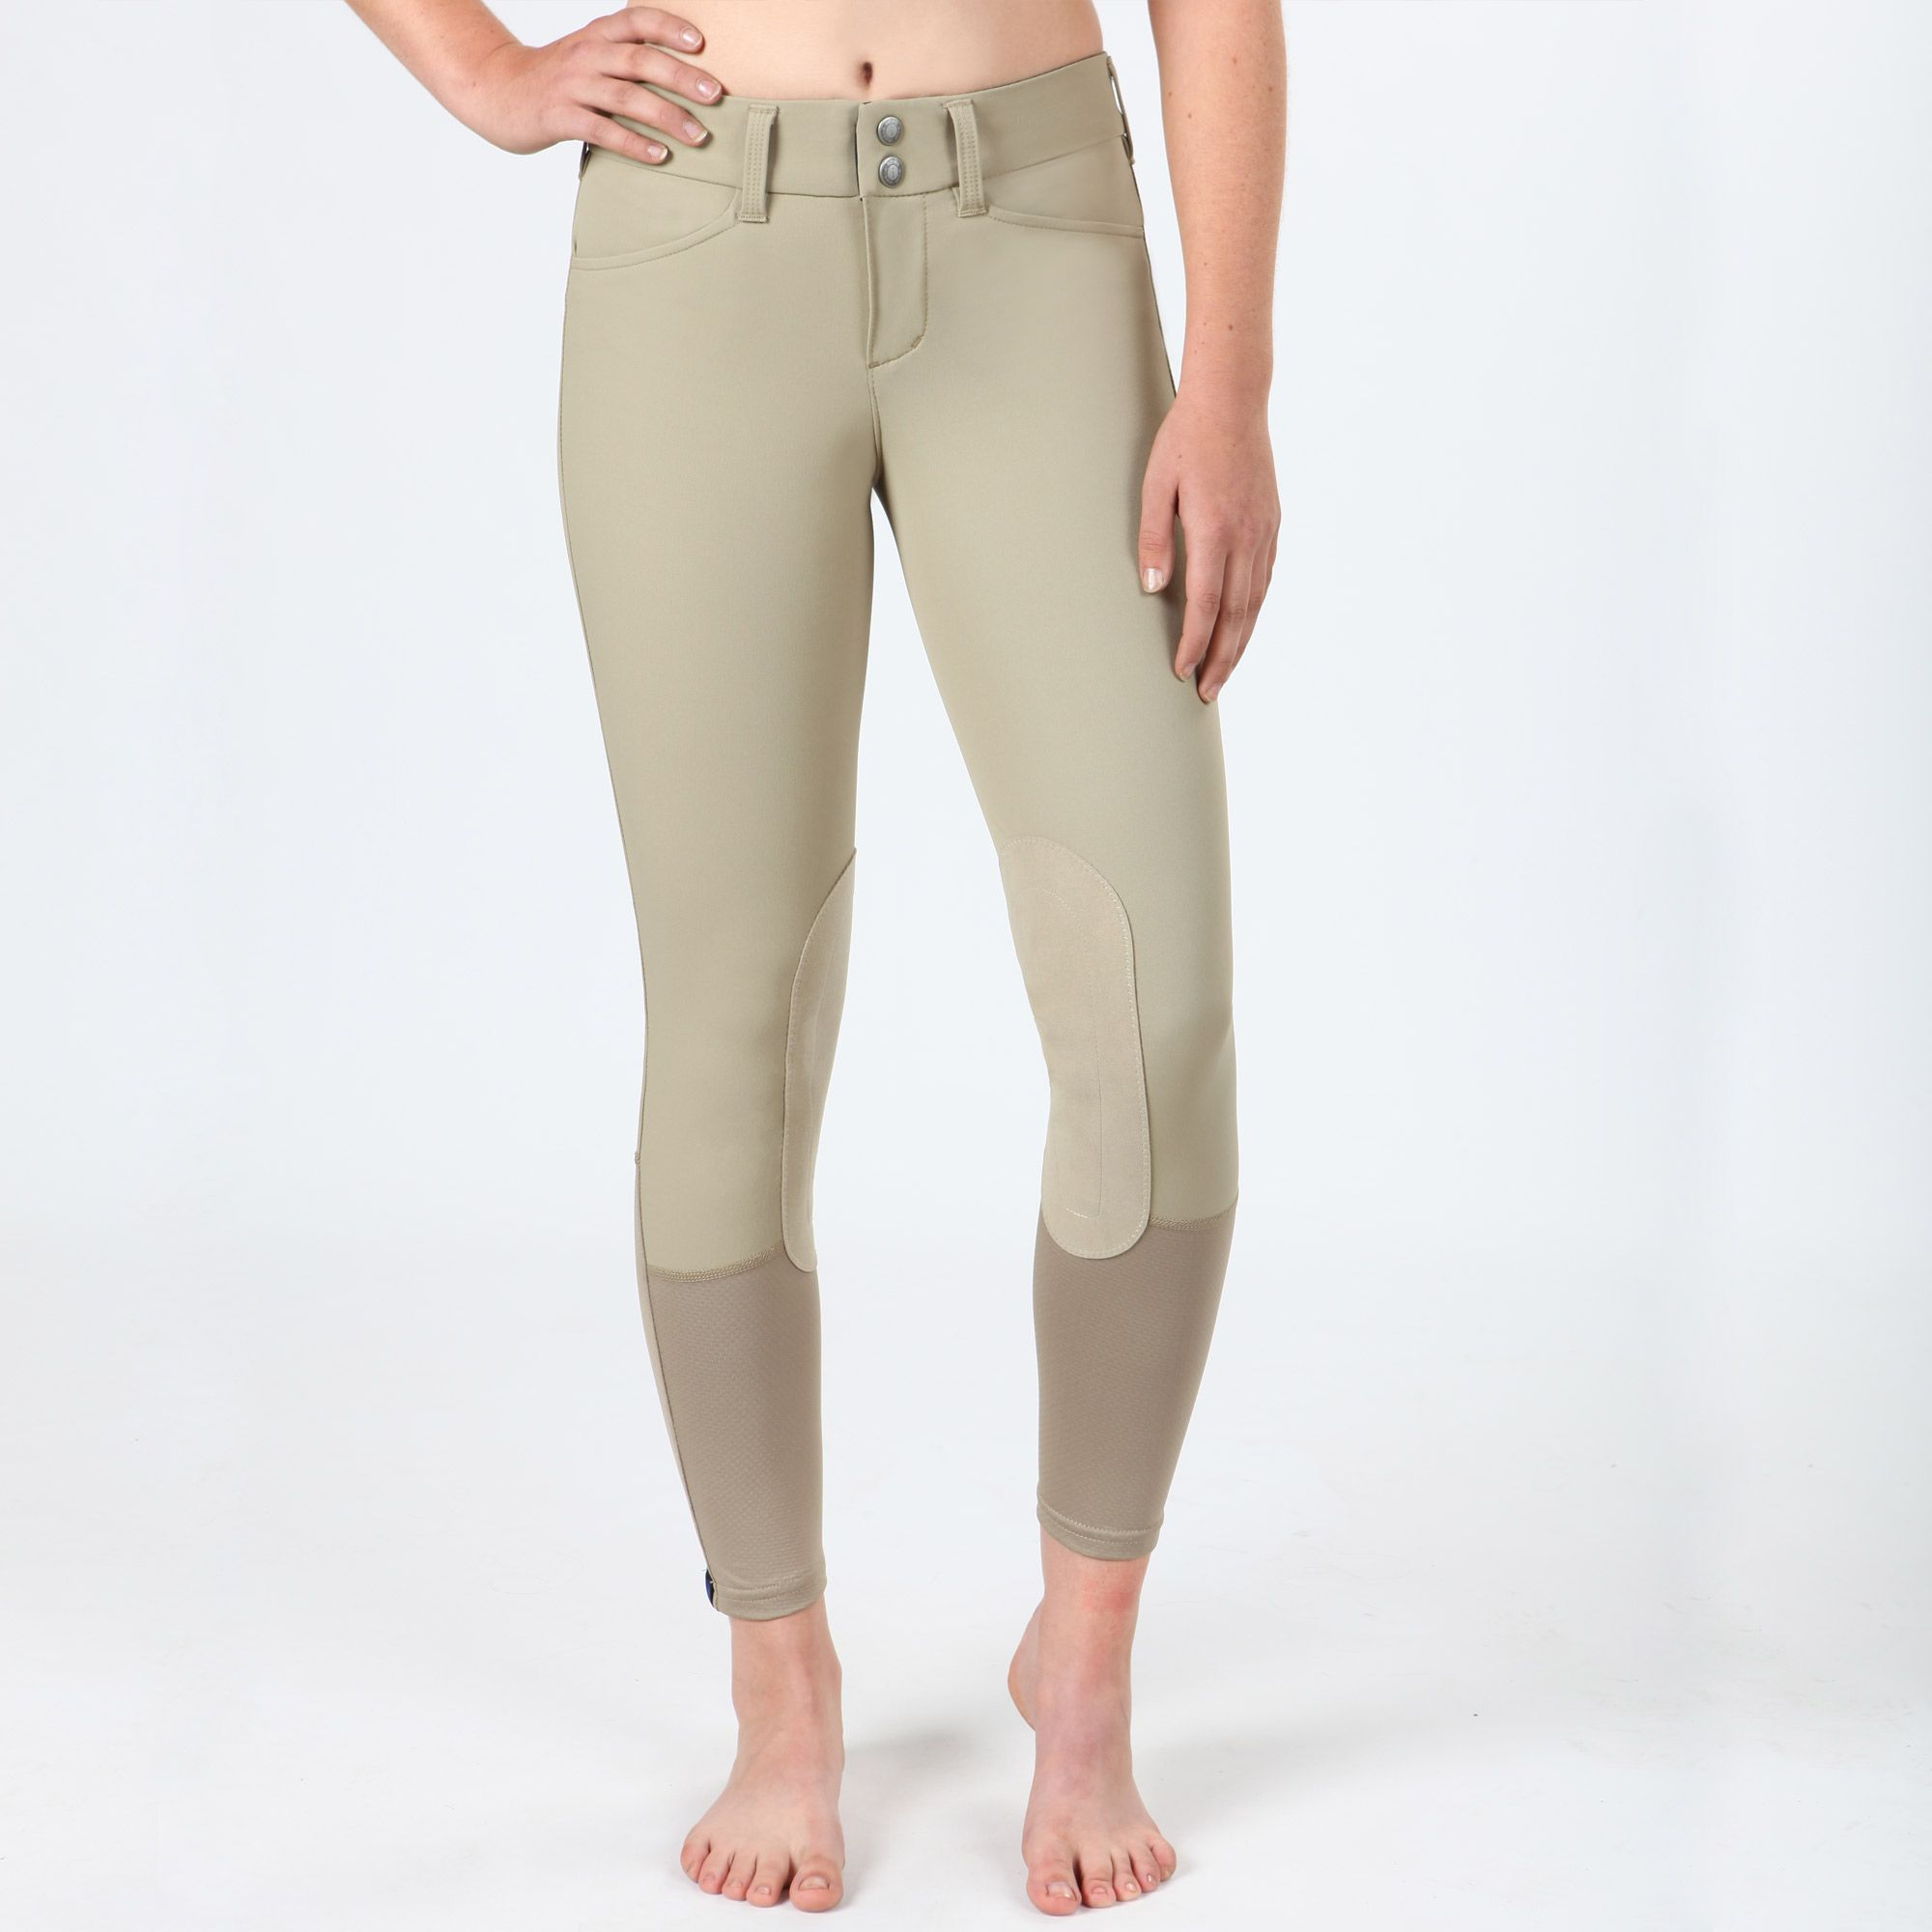 Irideon-Children-039-s-Hampshire-Knee-Patch-Riding-Breeches-with-Euro-Seat-Styling miniature 9